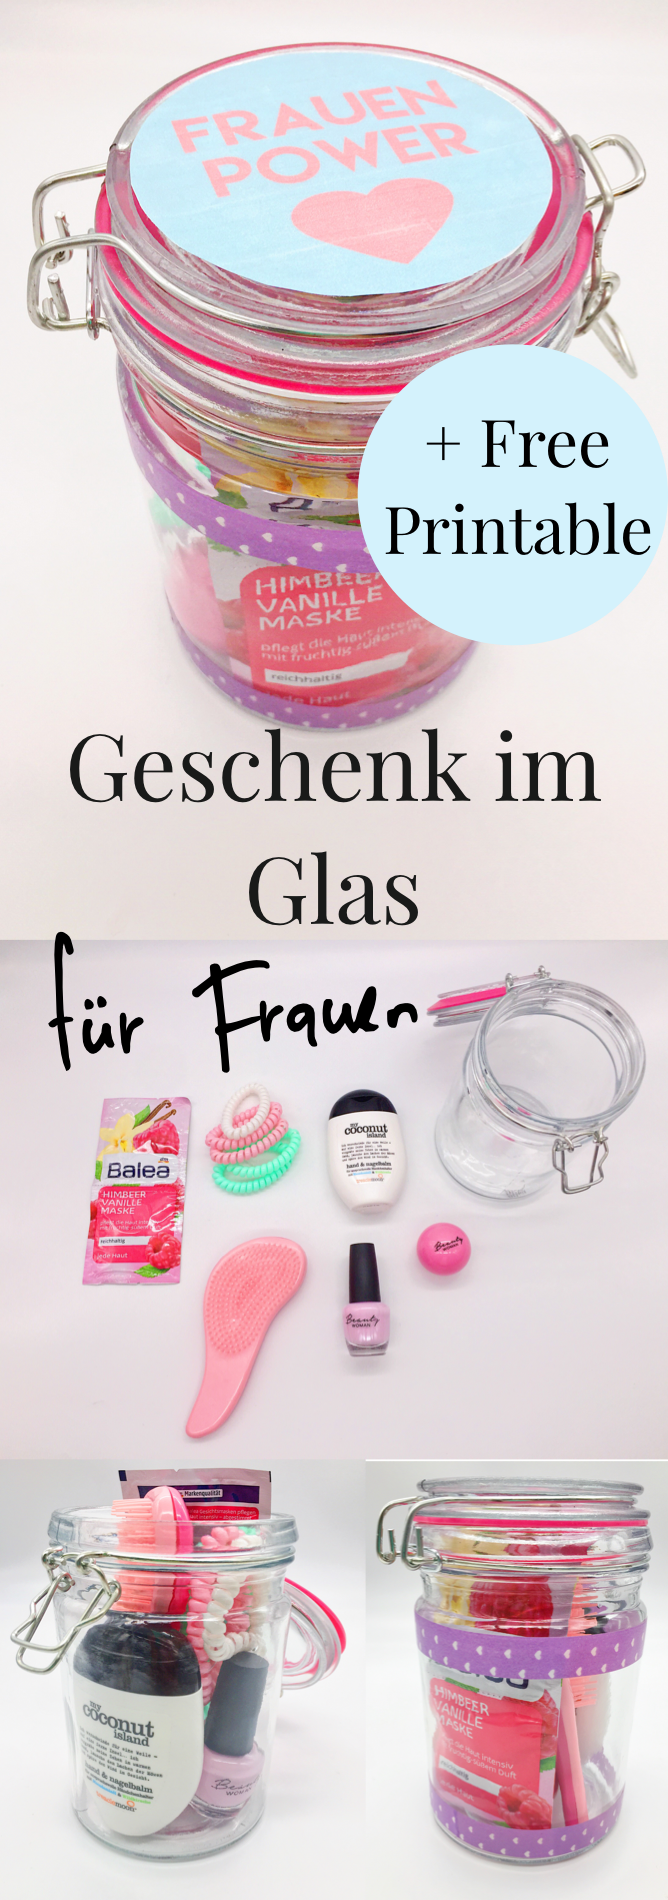 diy geschenke im glas selber machen pinterest. Black Bedroom Furniture Sets. Home Design Ideas